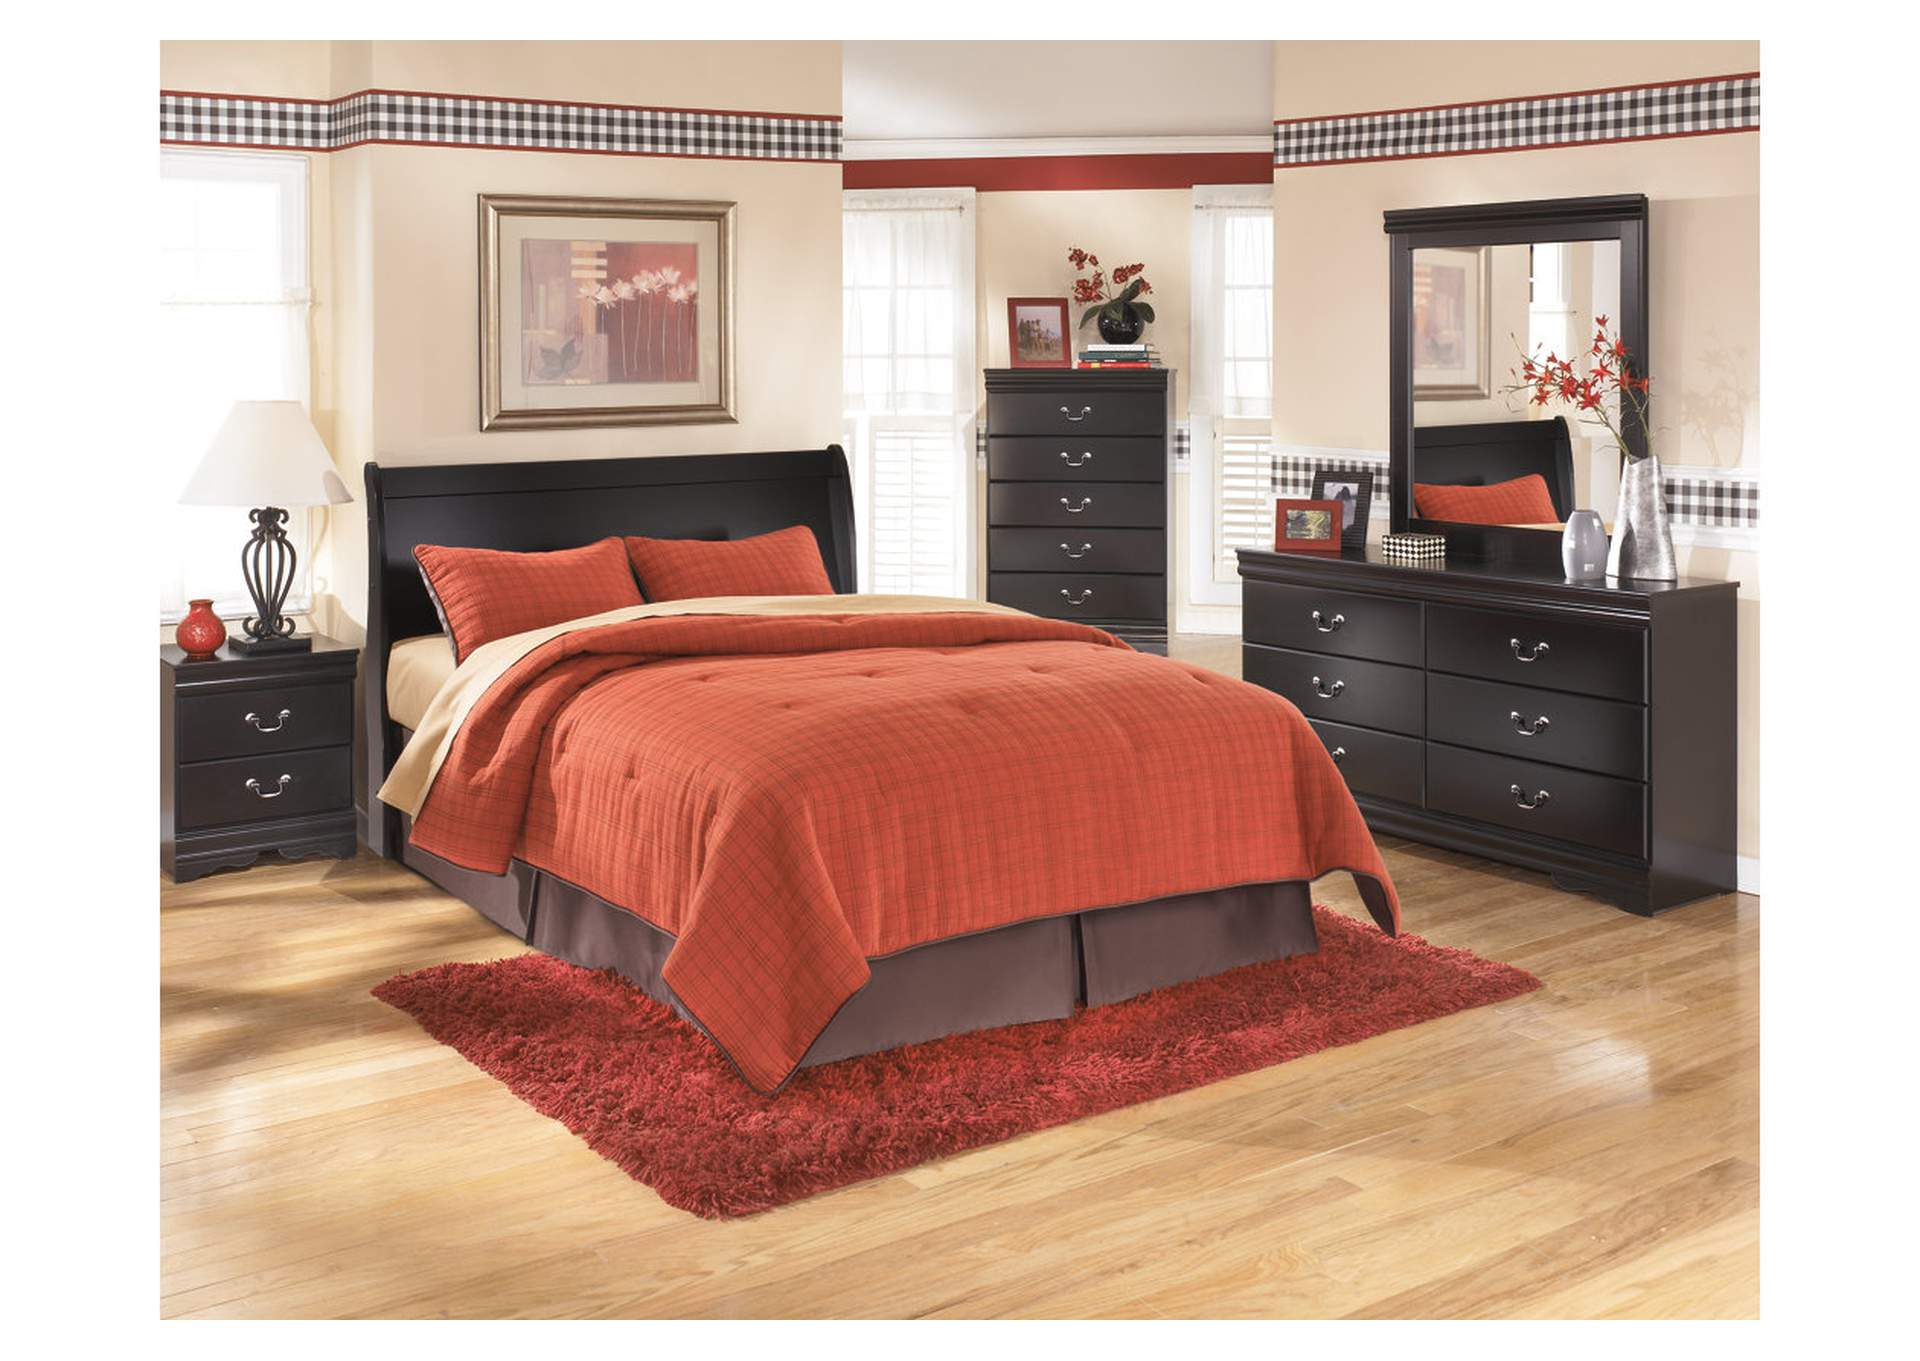 Huey Vineyard King Sleigh Headboard w/Dresser, Mirror, Drawer Chest & Nightstand,Signature Design By Ashley